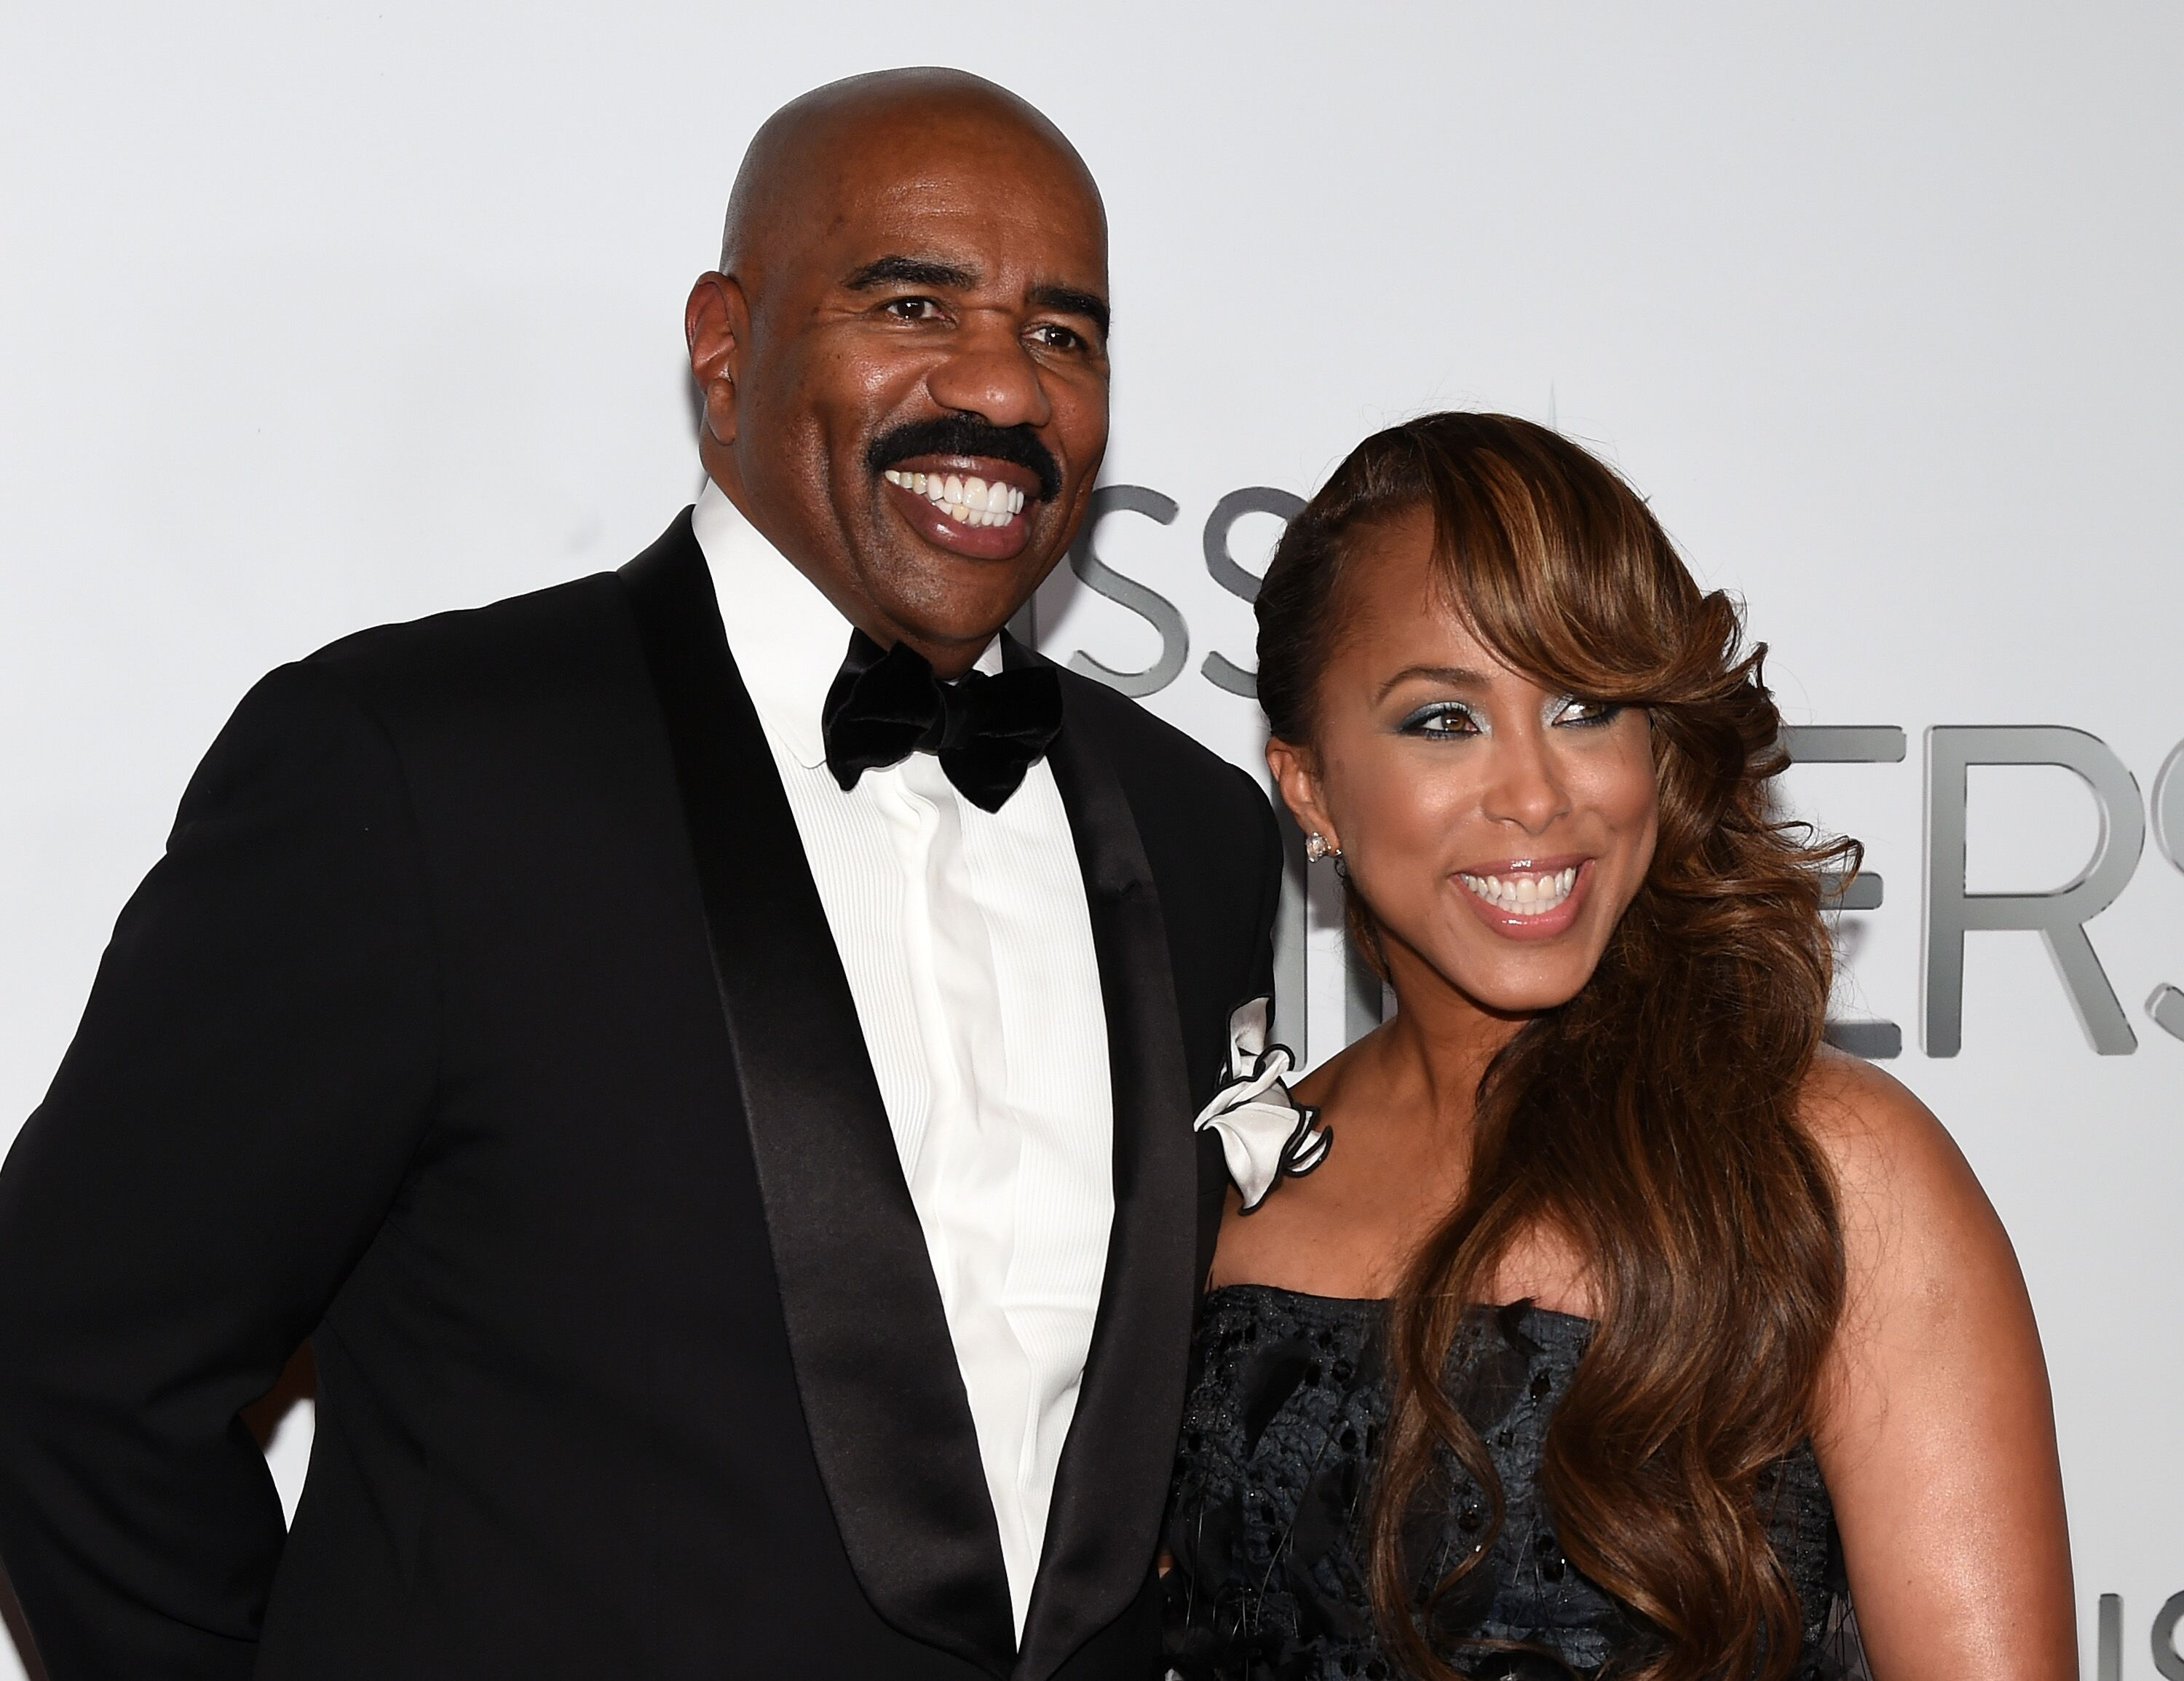 Steve and Marjorie Harvey during one of their red carpet appearances | Source: Getty Images/GlobalImagesUkraine